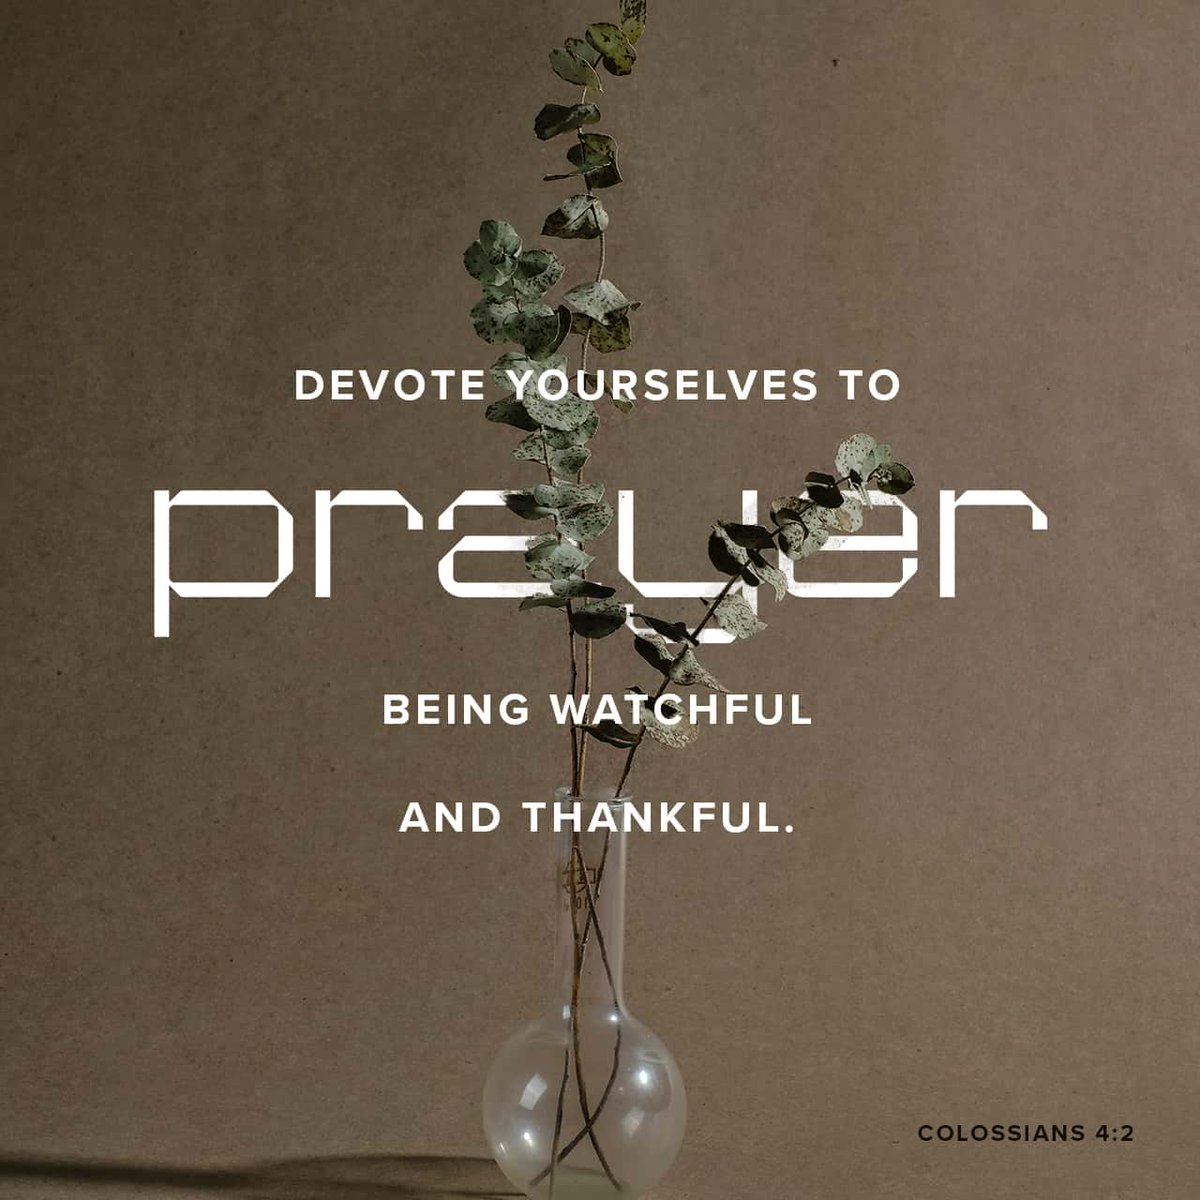 Devote yourselves to prayer with an alert mind and a thankful heart. Colossians 4:2 NLT  https://t.co/AjdOpExC43 https://t.co/6F8F1DrCTT